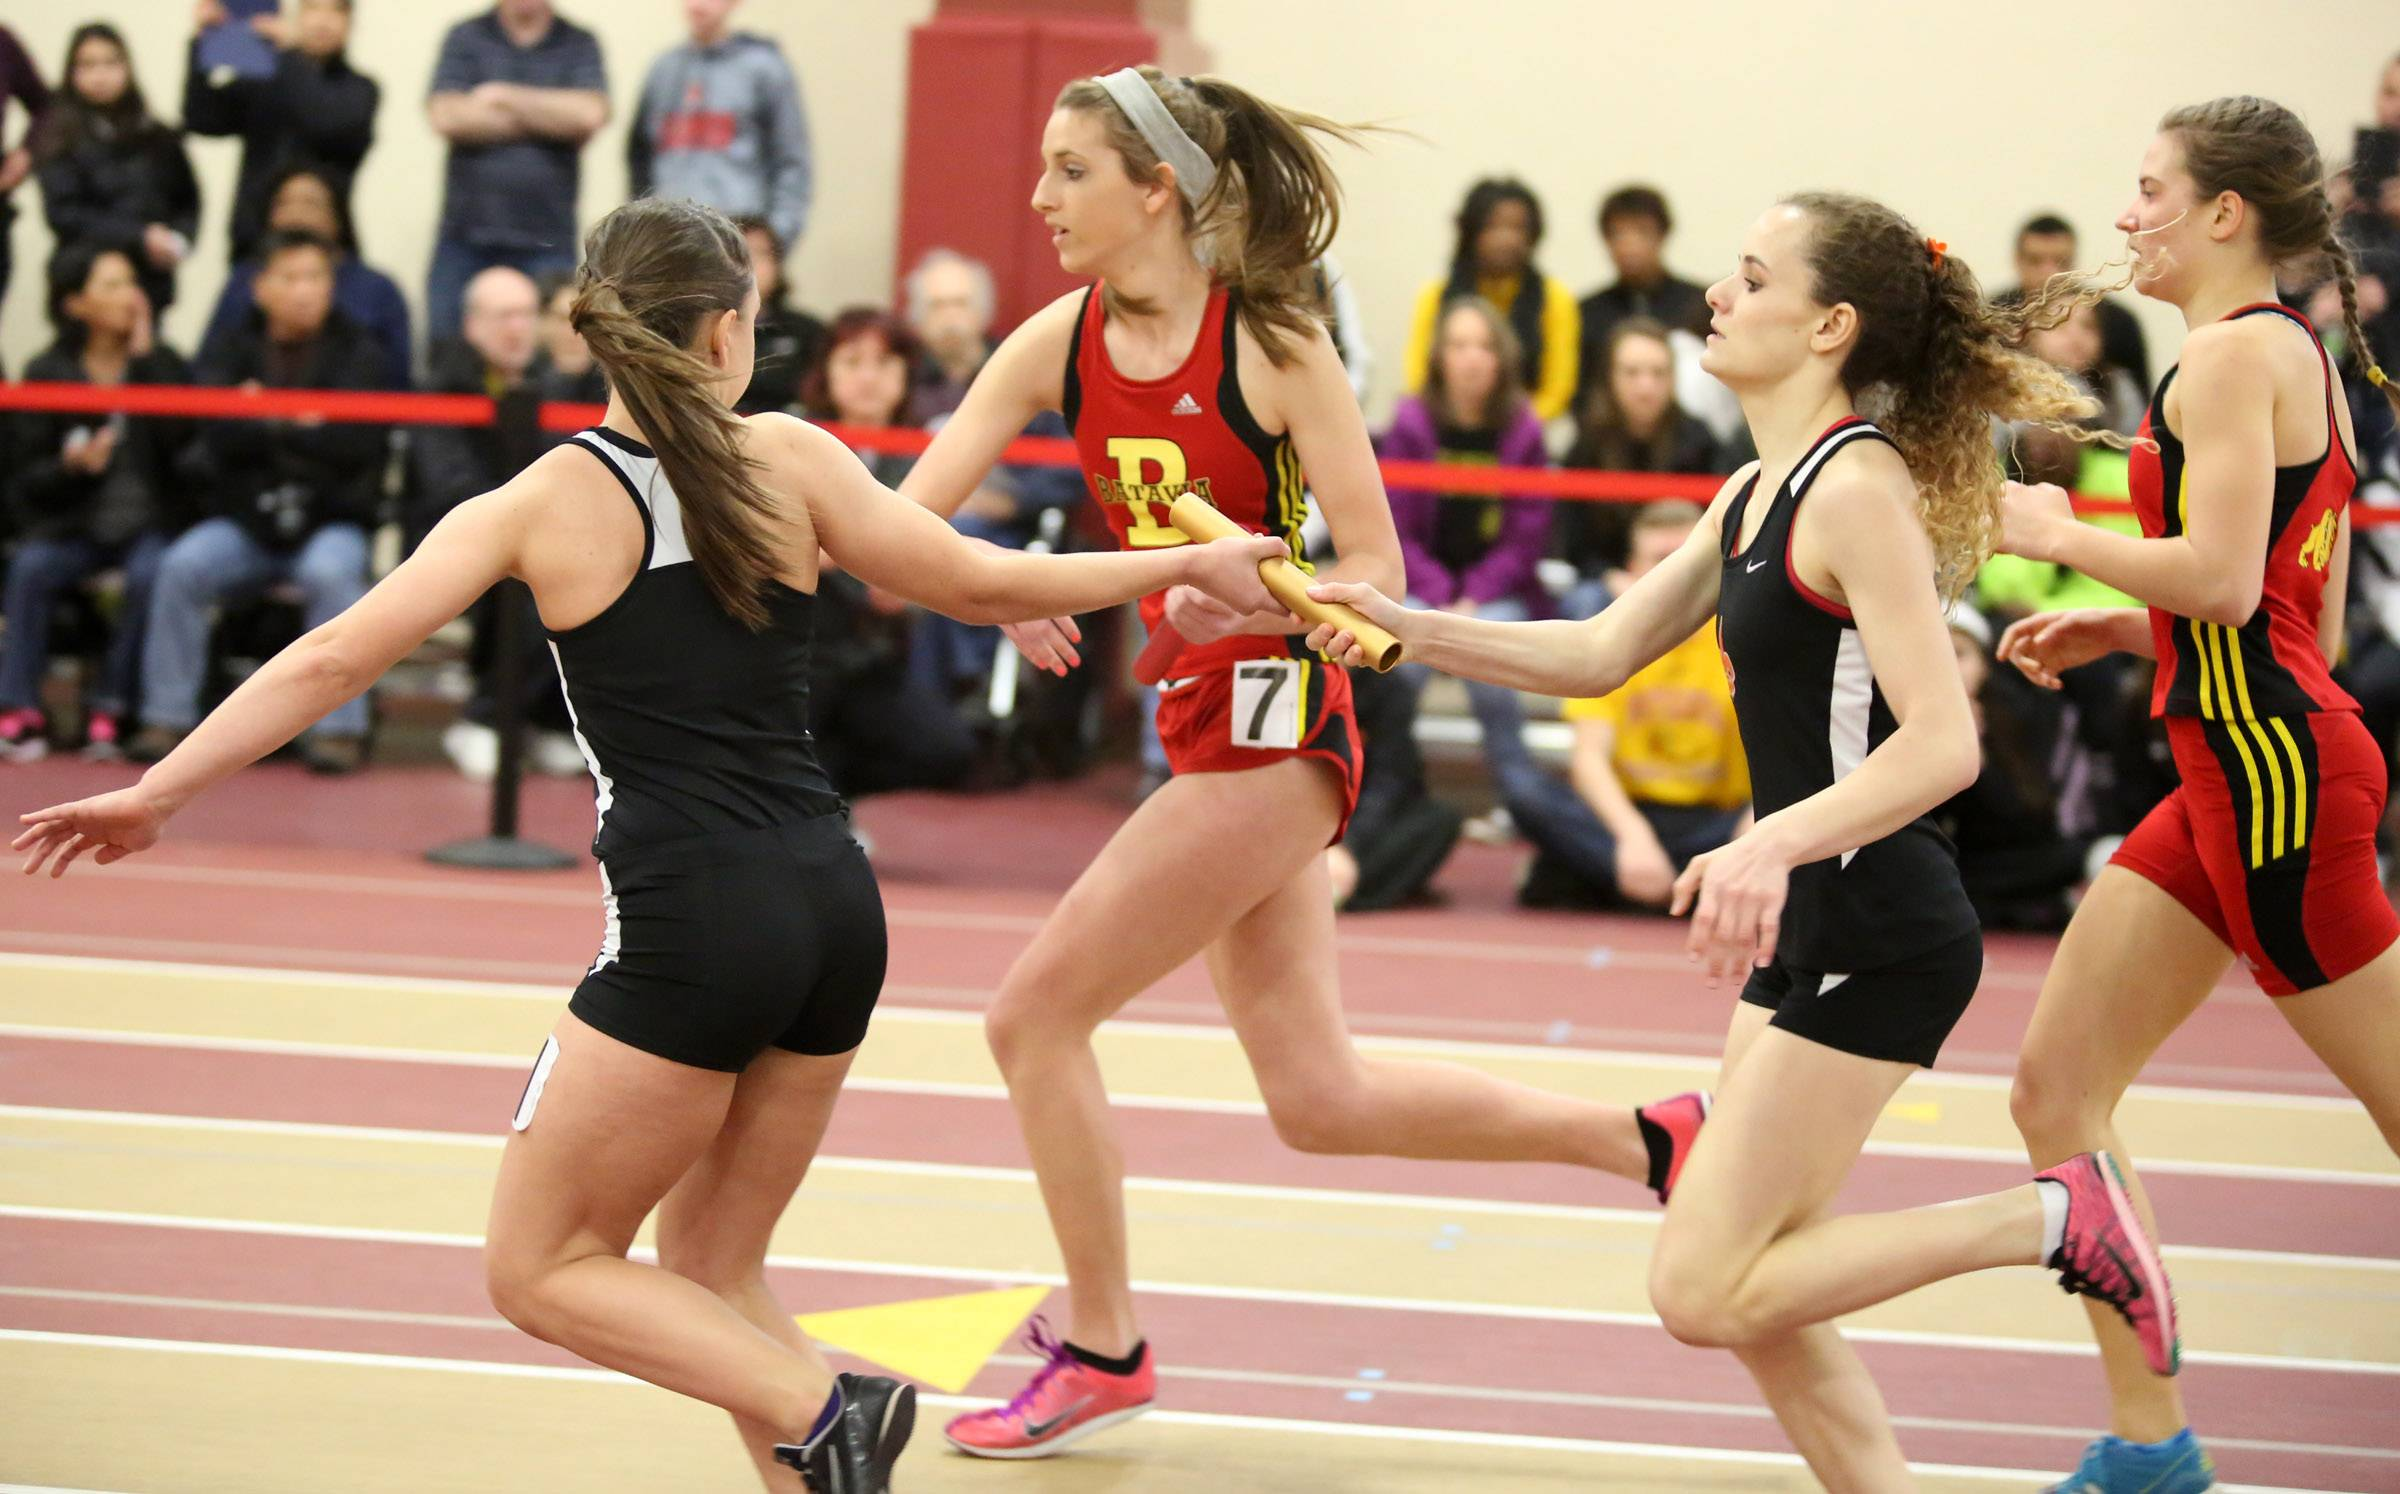 St. Charles East Anastasia Honea, right, hands the baton to Corrin Adams for the last leg of 3,200 relay at the Upstate Eight Conference indoor track meet on Saturday at Batavia.